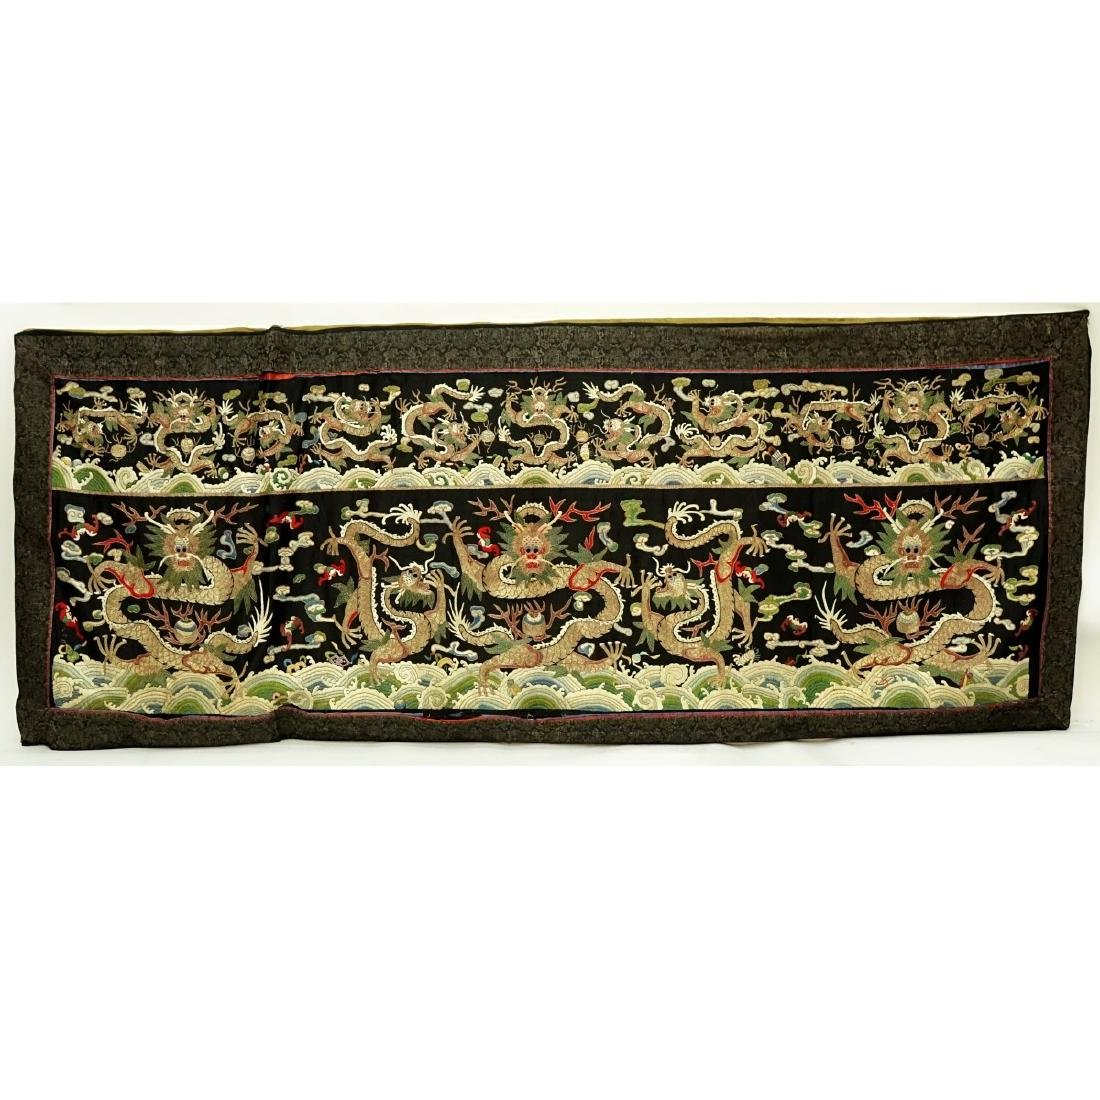 Fine Quality Antique Chinese Silk Embroidery